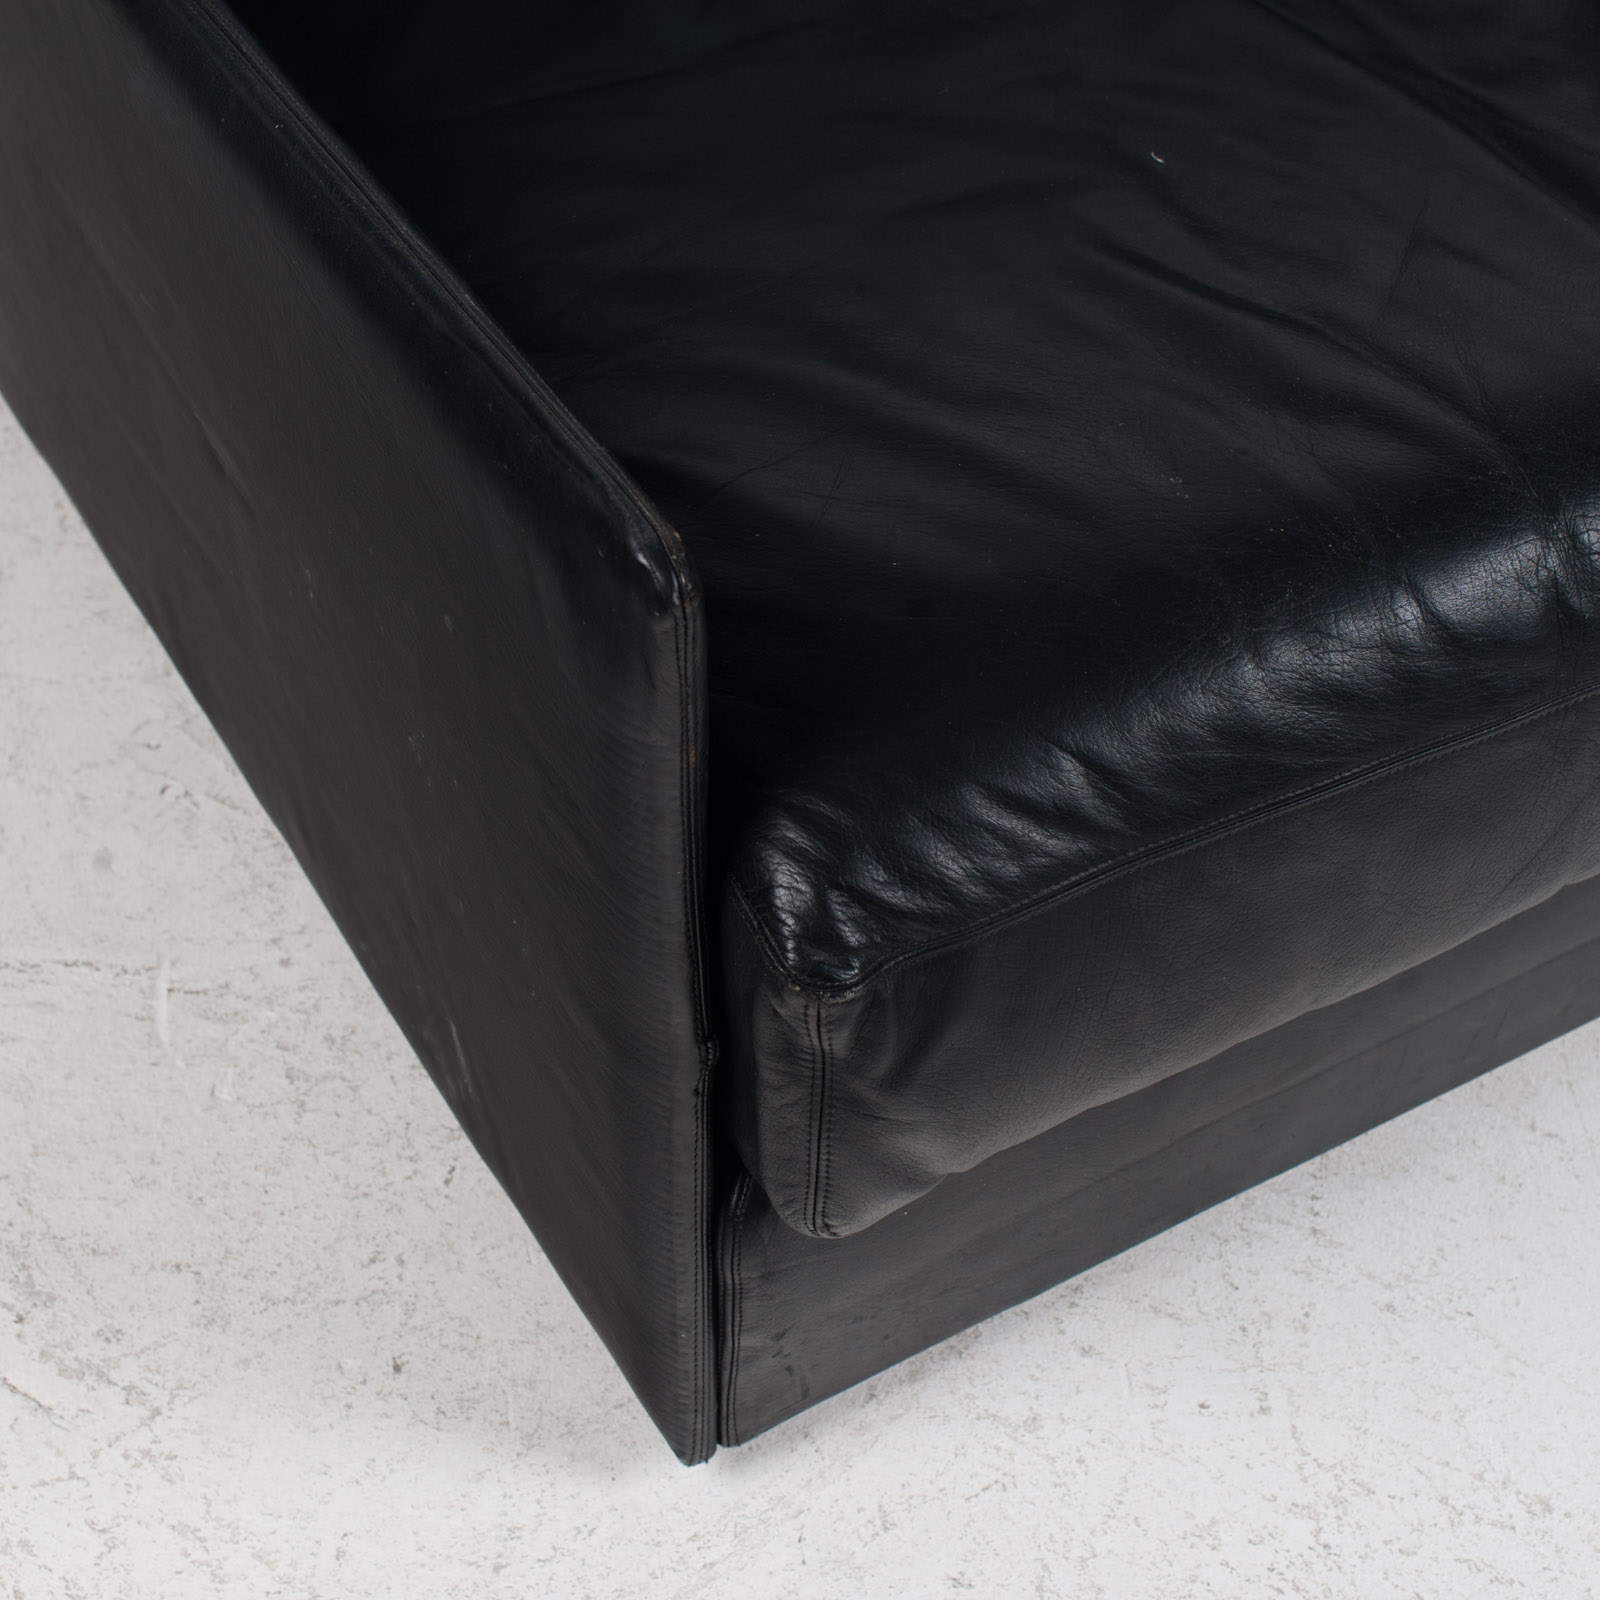 Ds 76 2 Seat Sofa By De Sede In Black Leather 1970s Switzerland 04